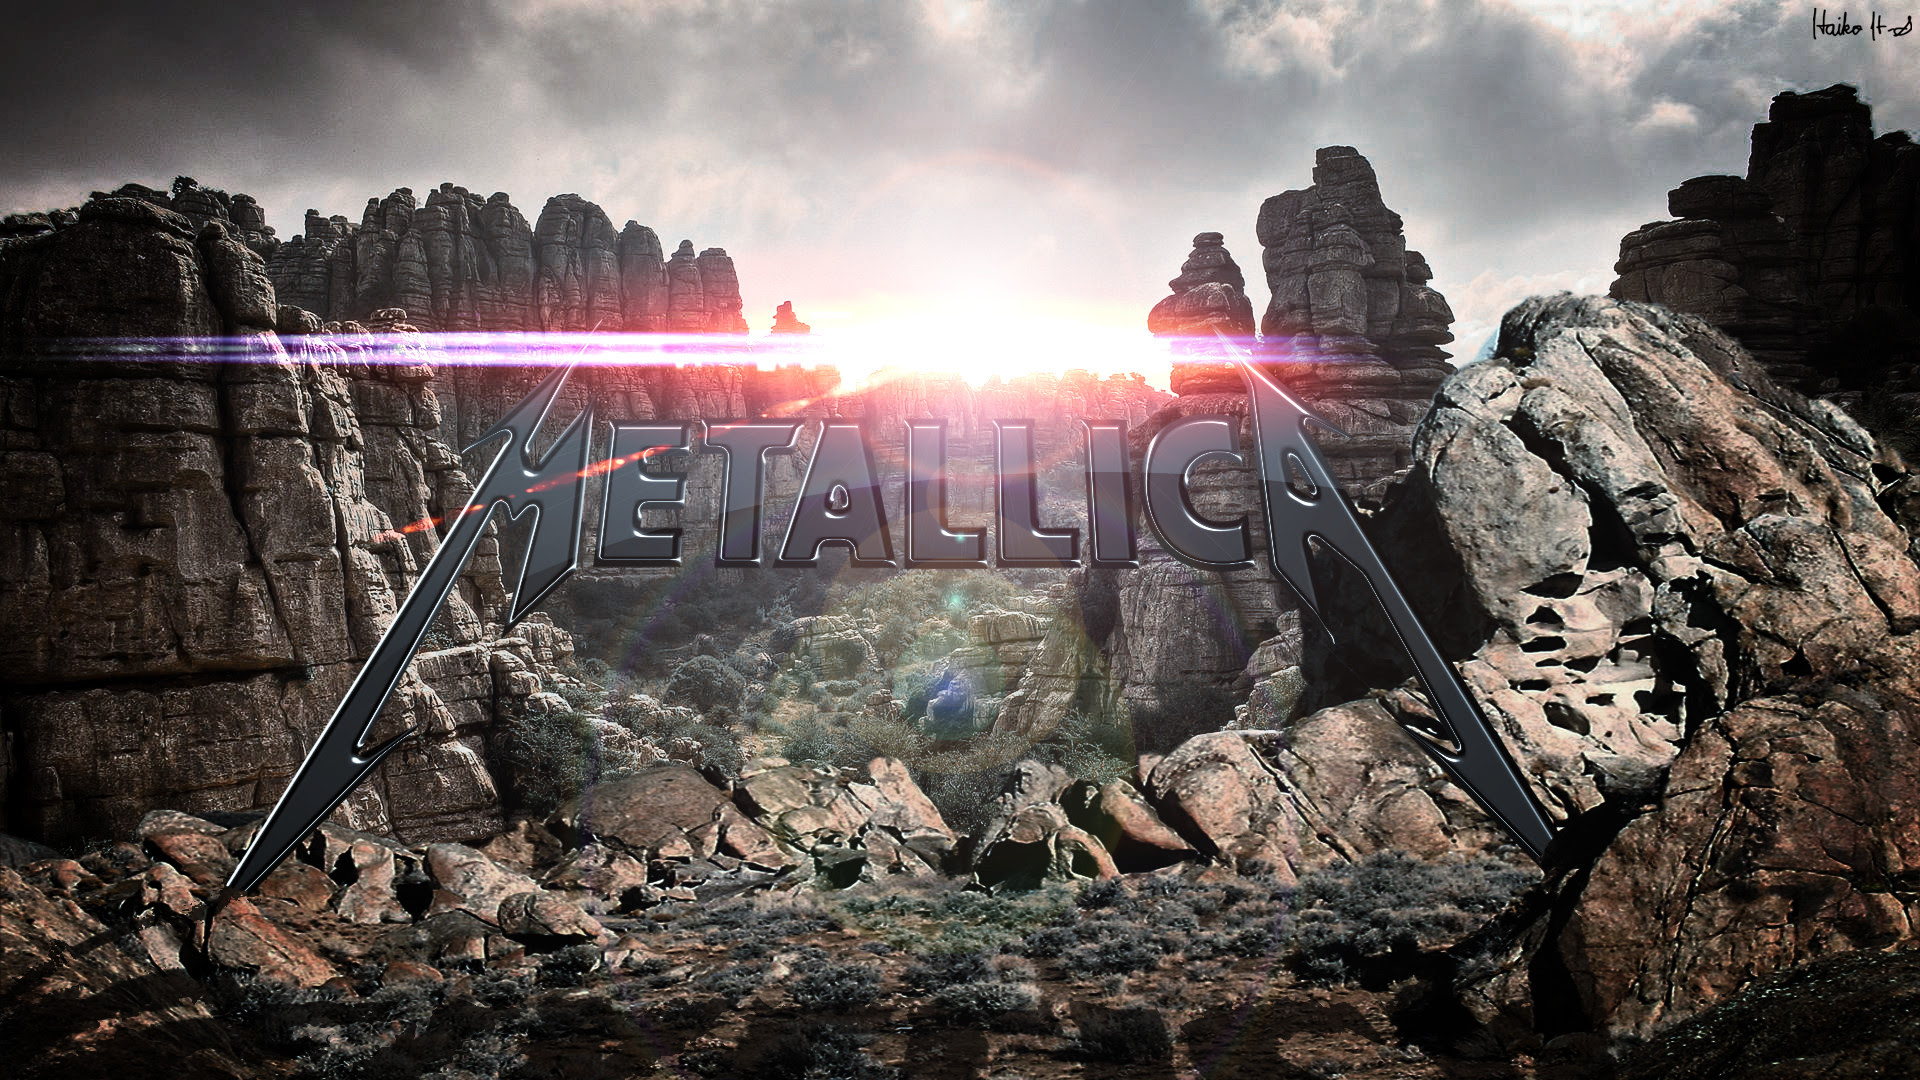 Metallica Master of Puppets Wallpaper (60+ images)